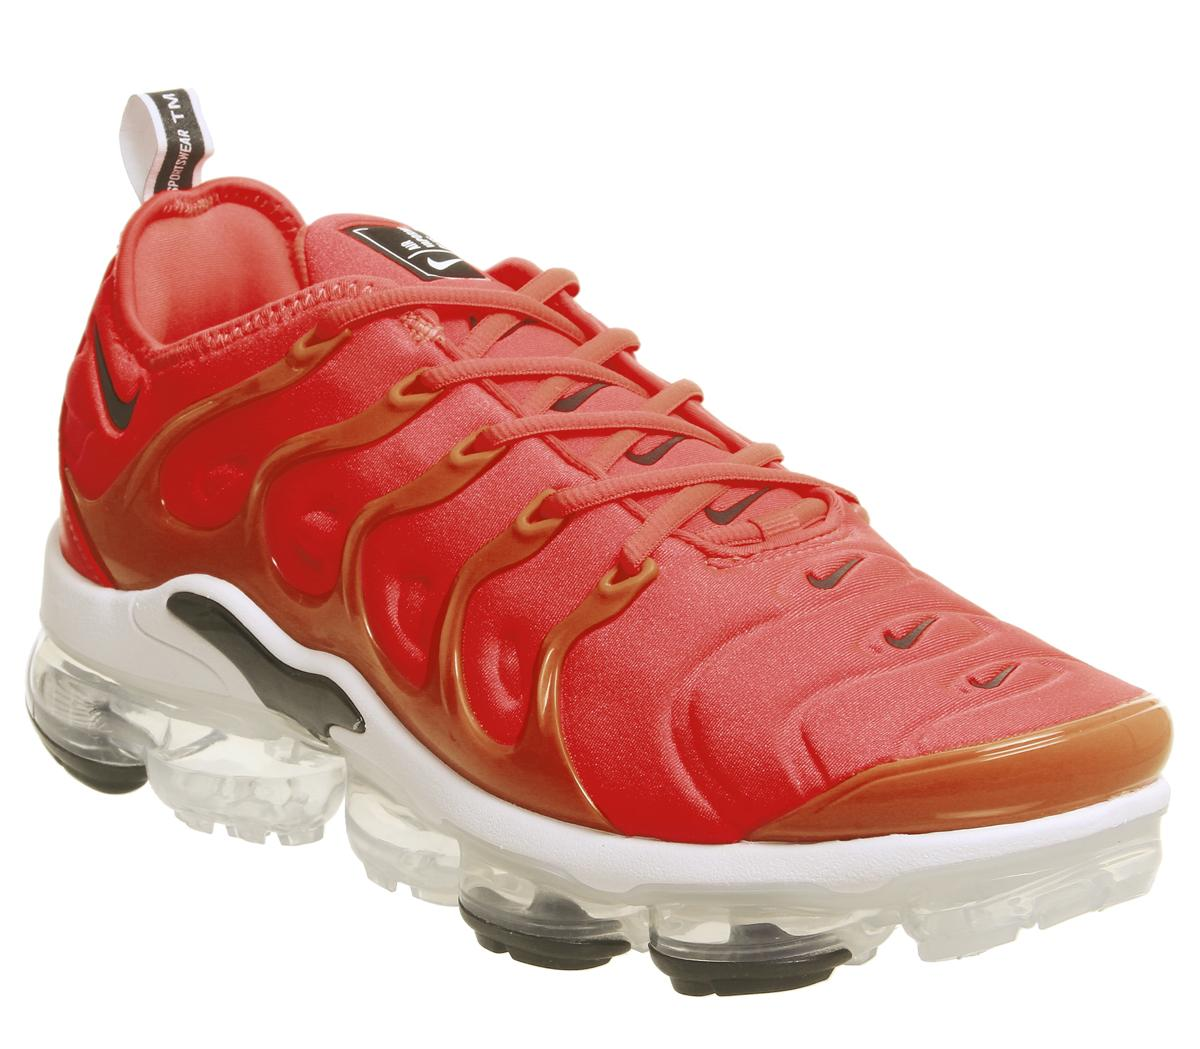 reputable site a2aa1 aceca Nike Vapormax Air Vapormax Plus Trainers Bright Crimson Black White ...